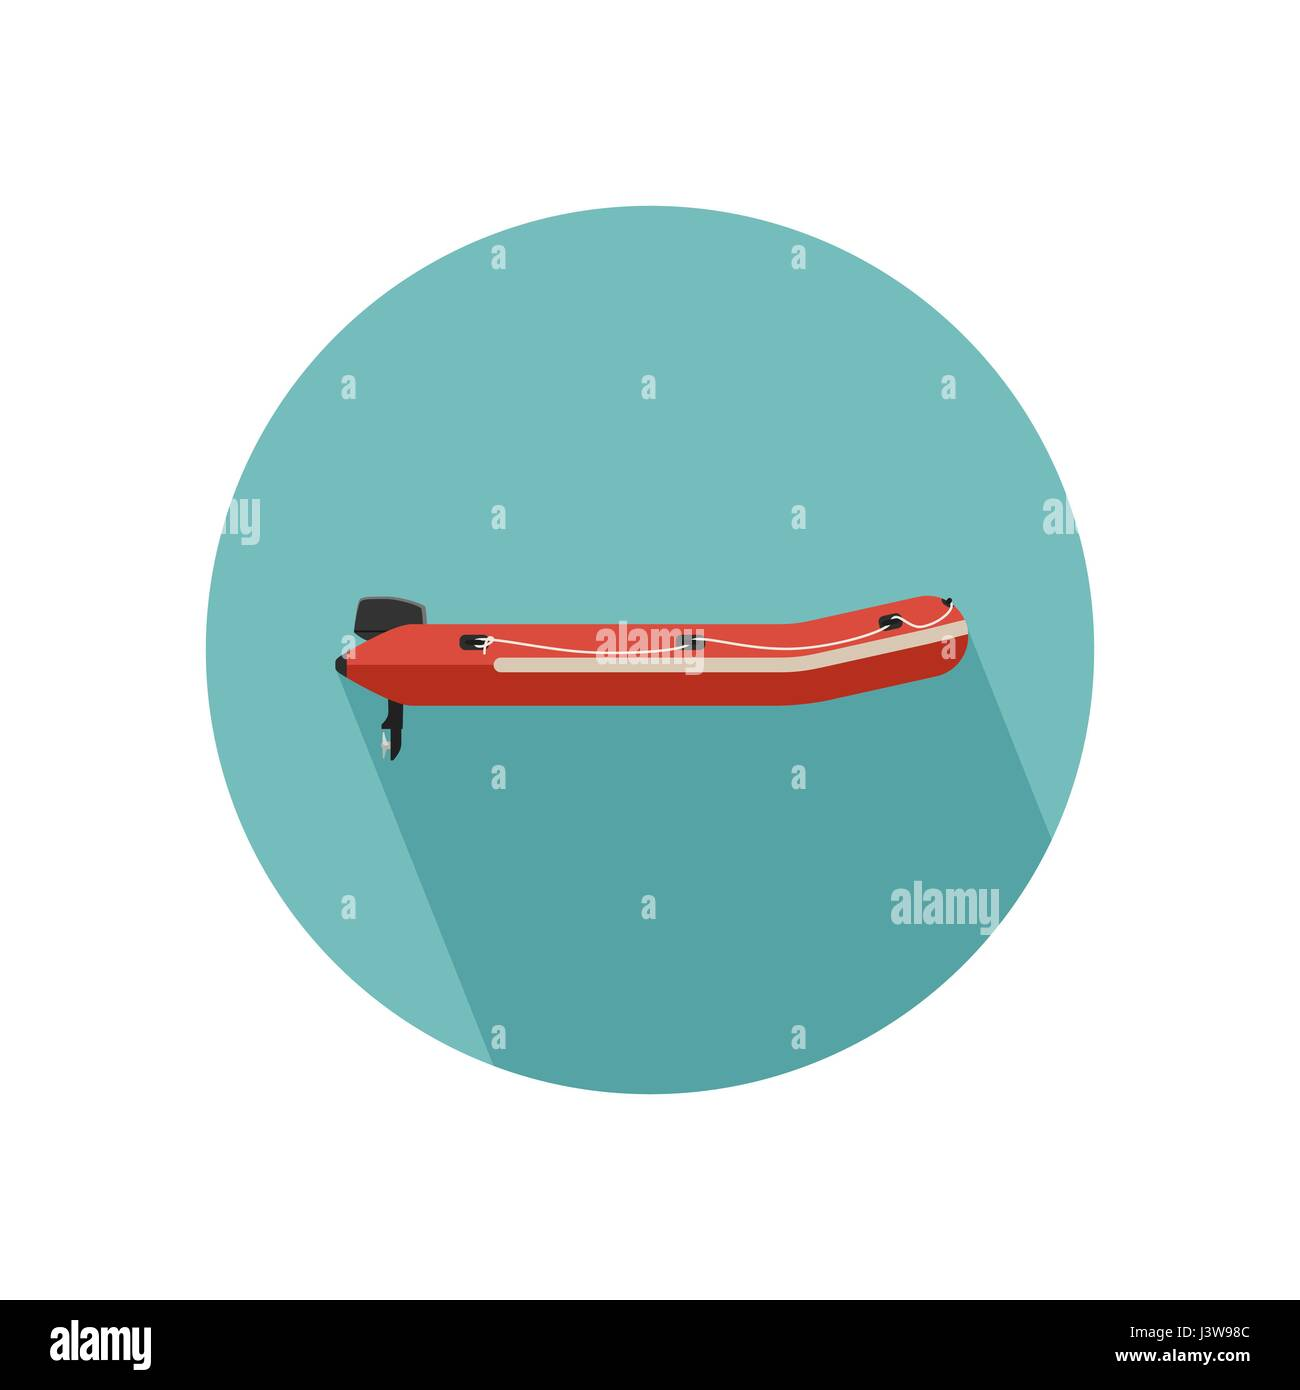 Inflatable red boat - Stock Vector